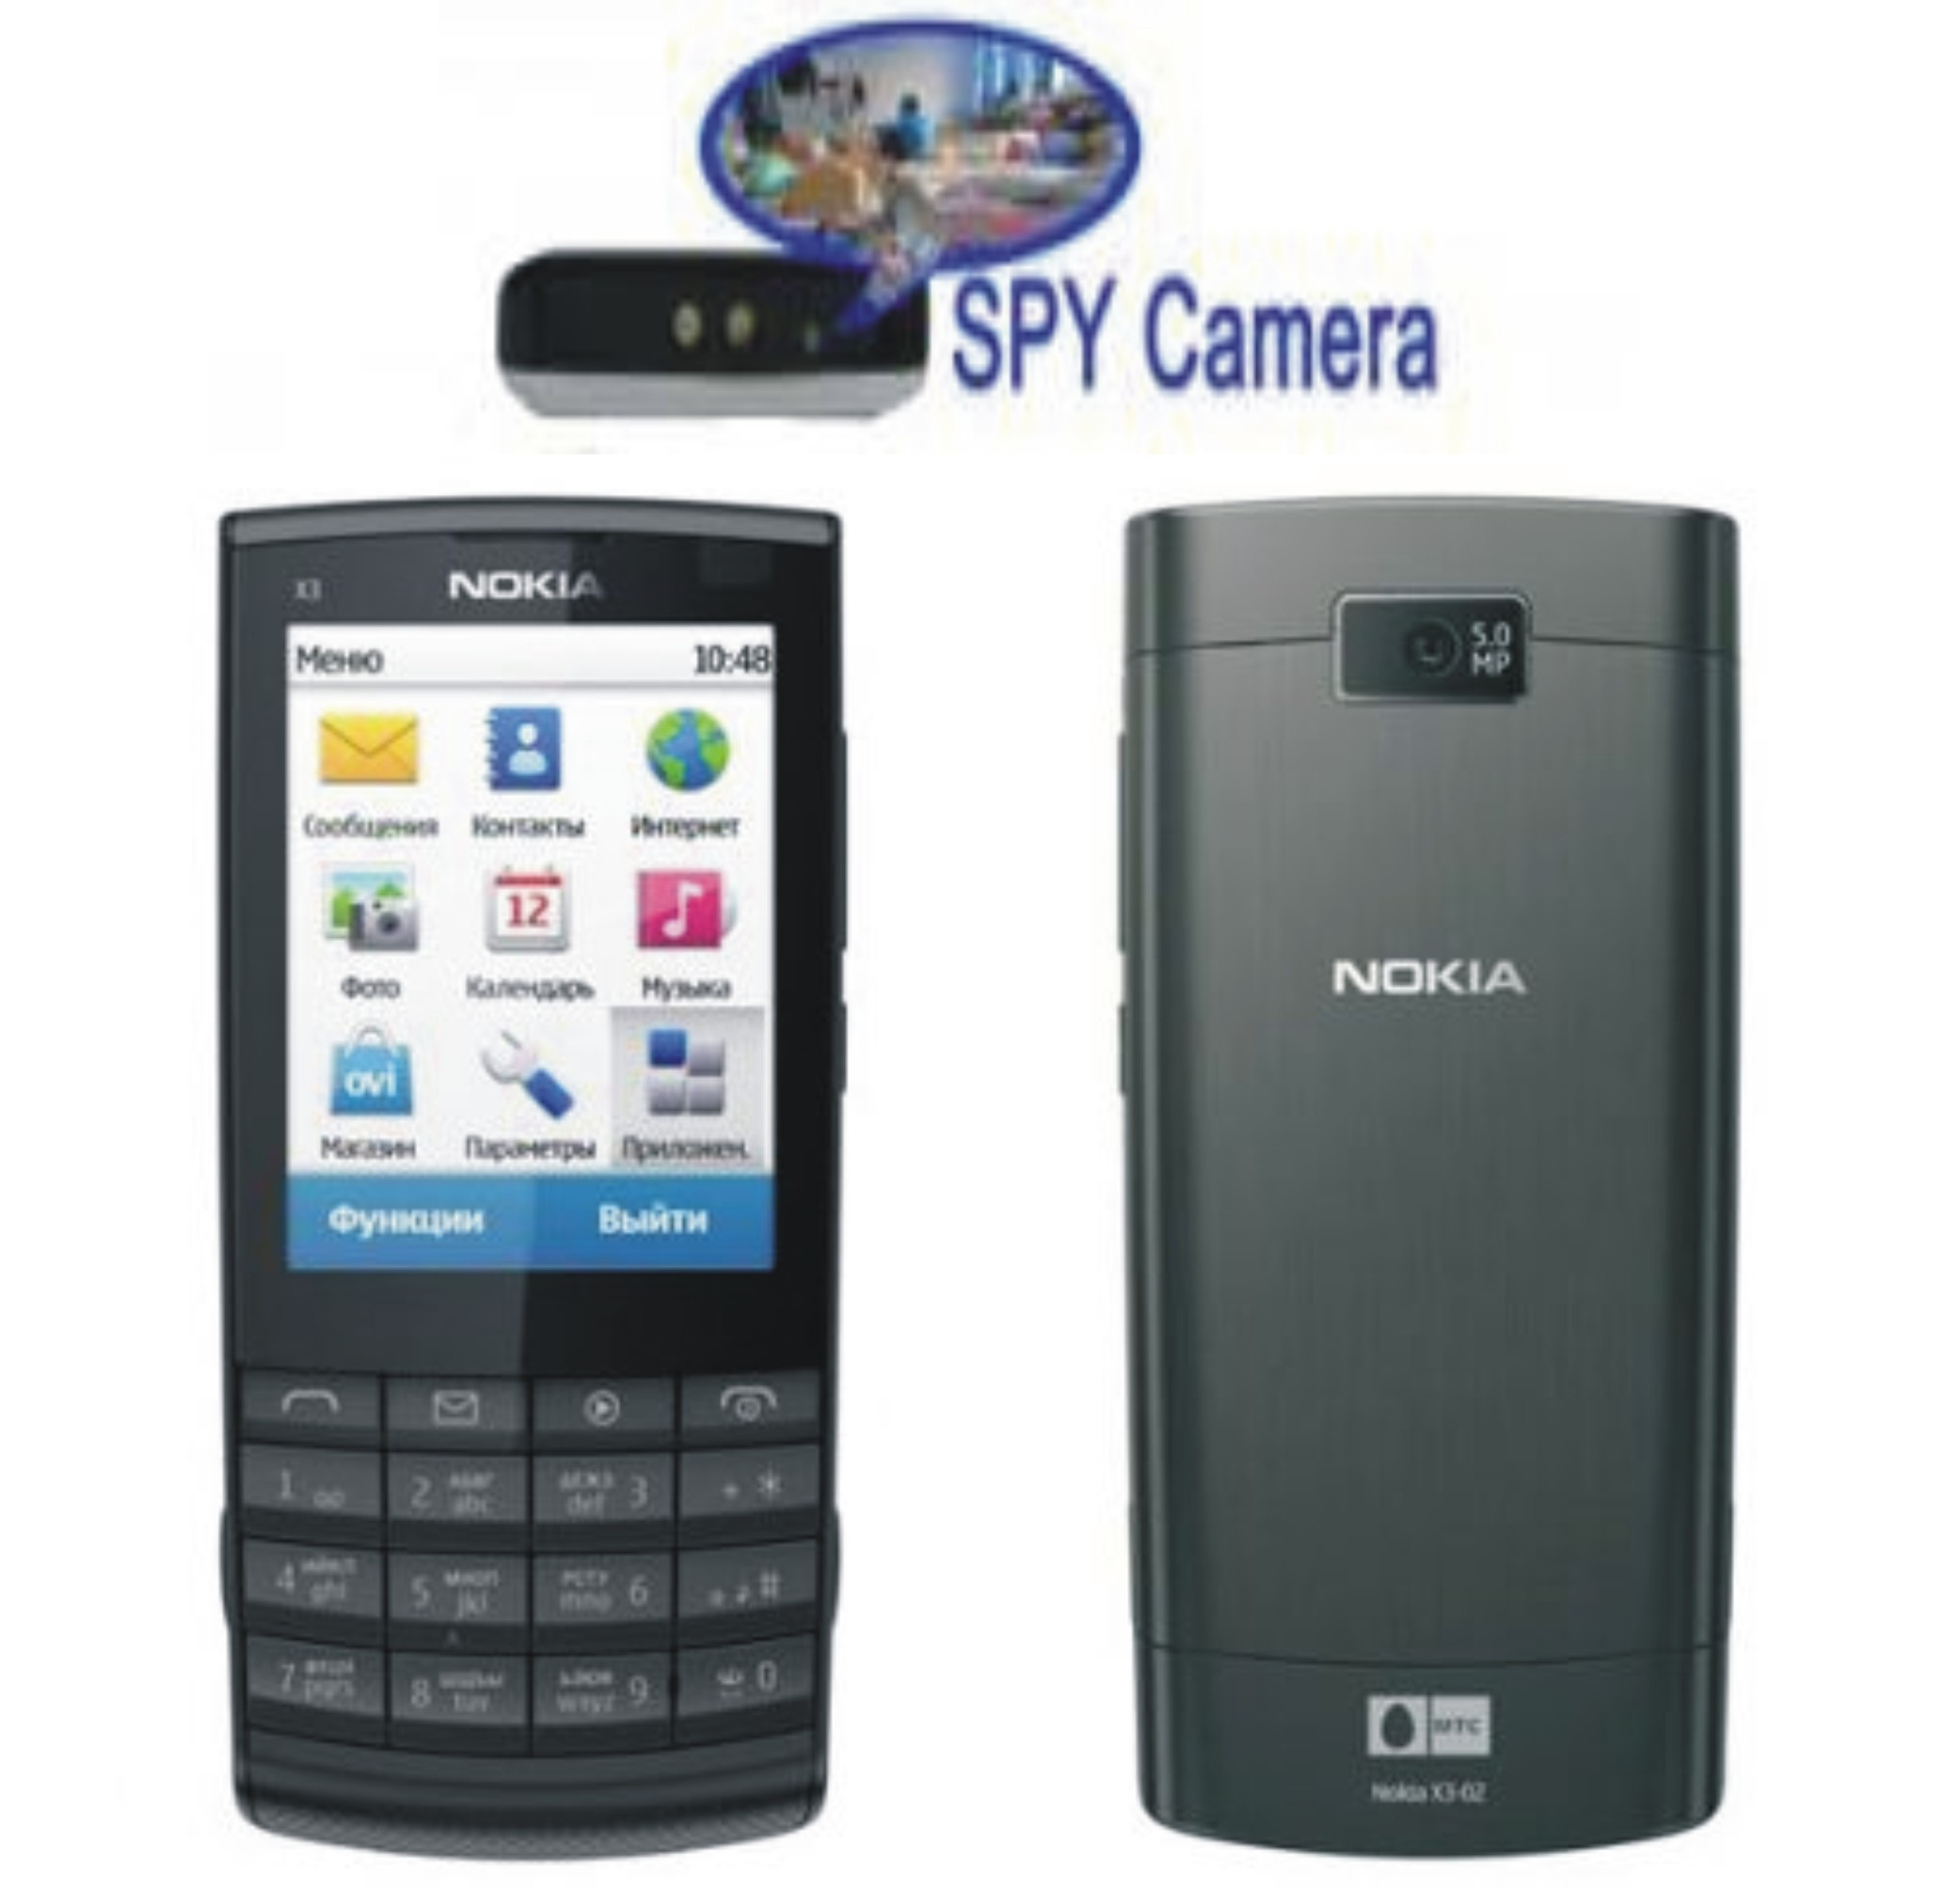 Spy Camera In Nokia Phone Touch Screen In Sihor